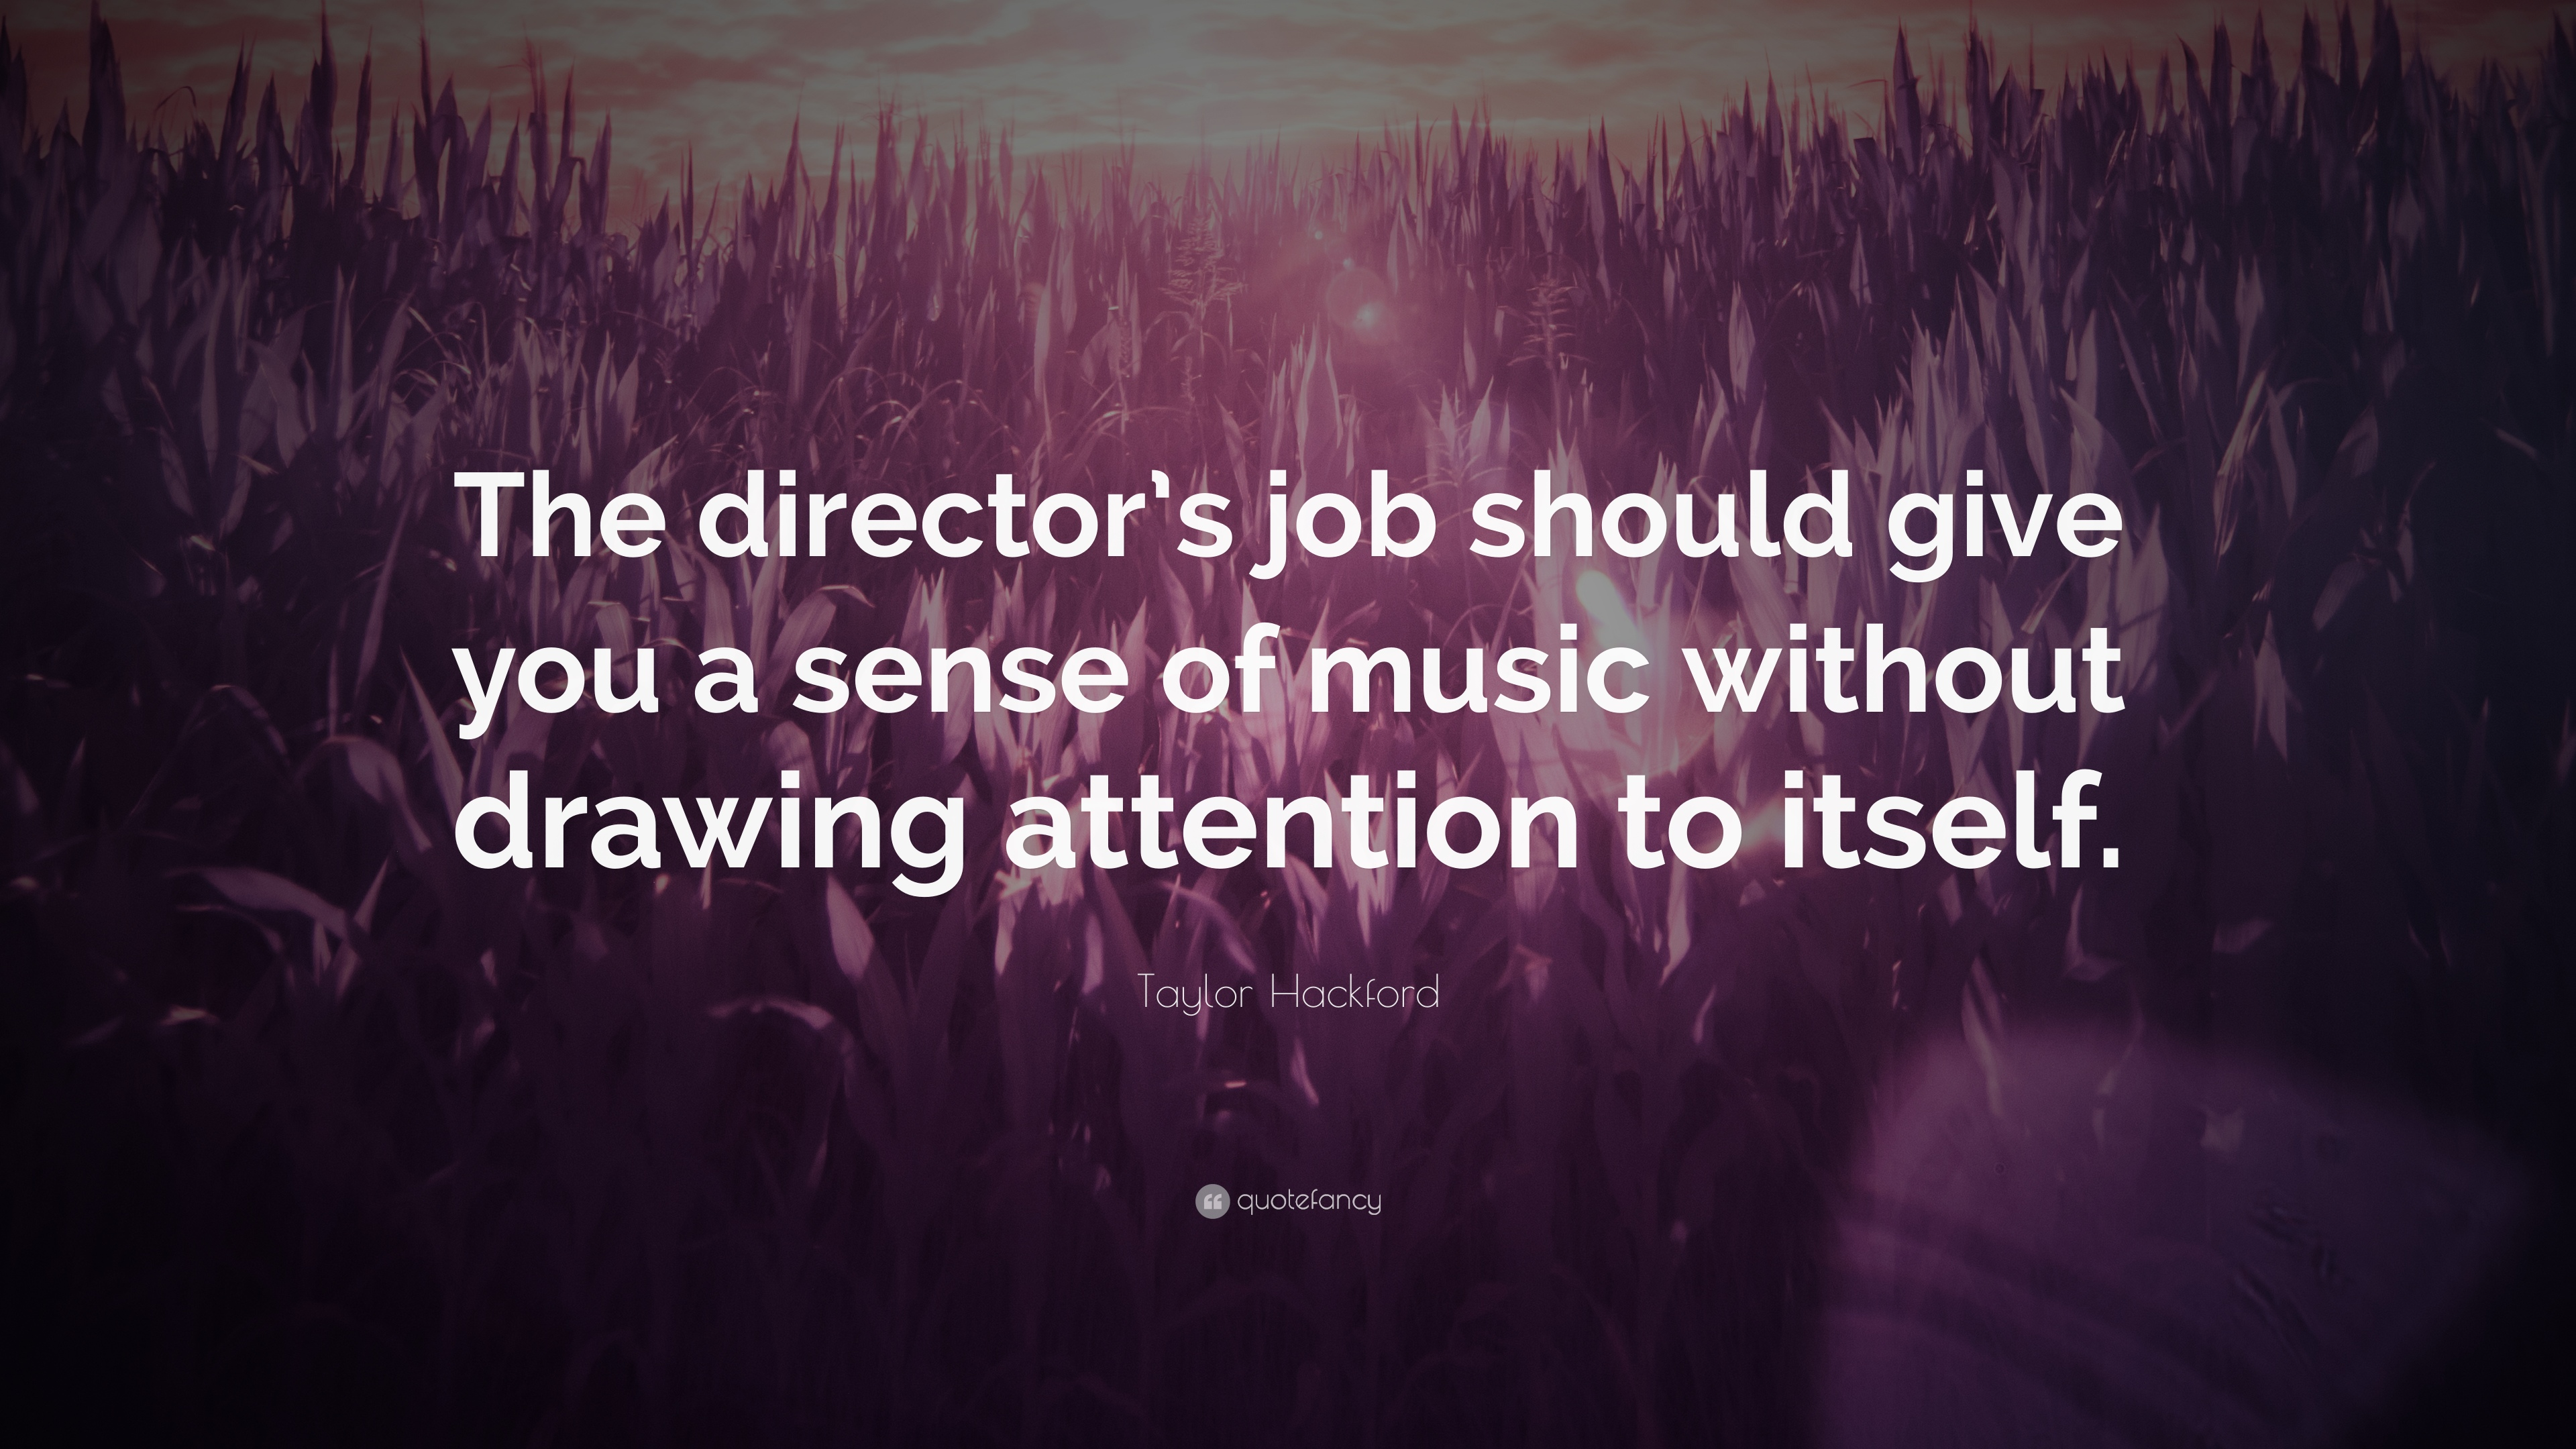 What should I give to the director from the collective